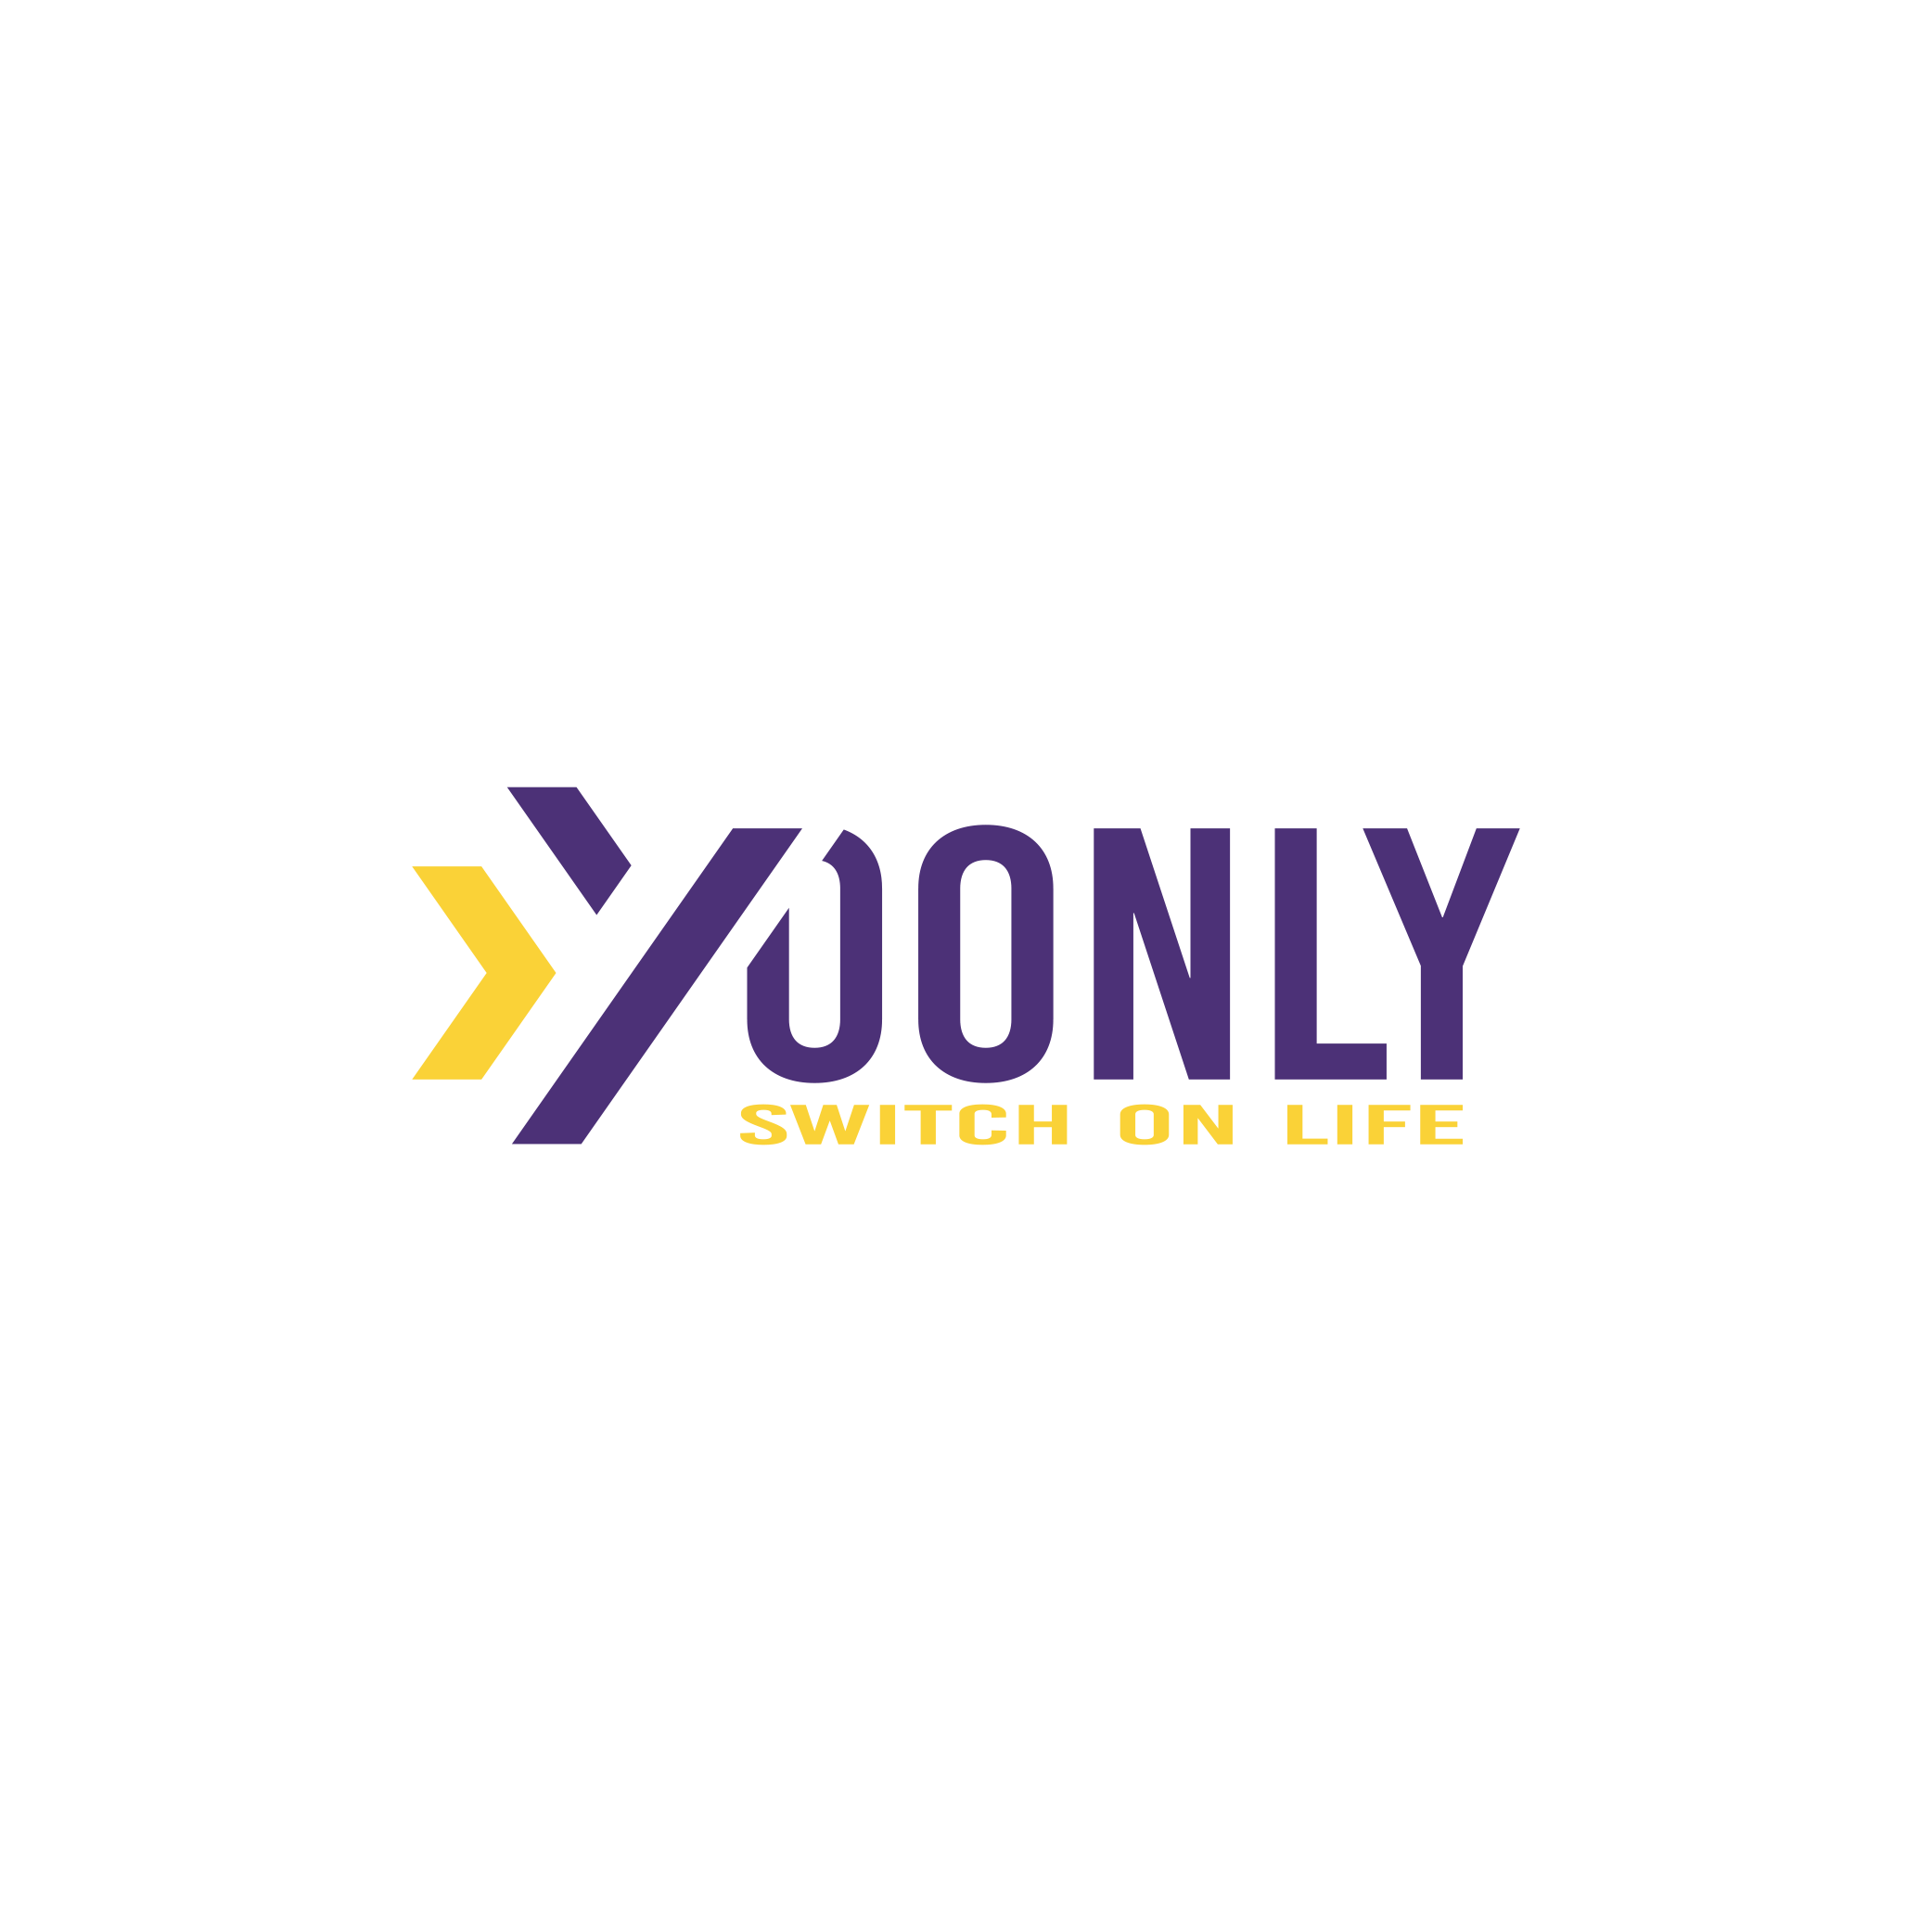 Yoonly